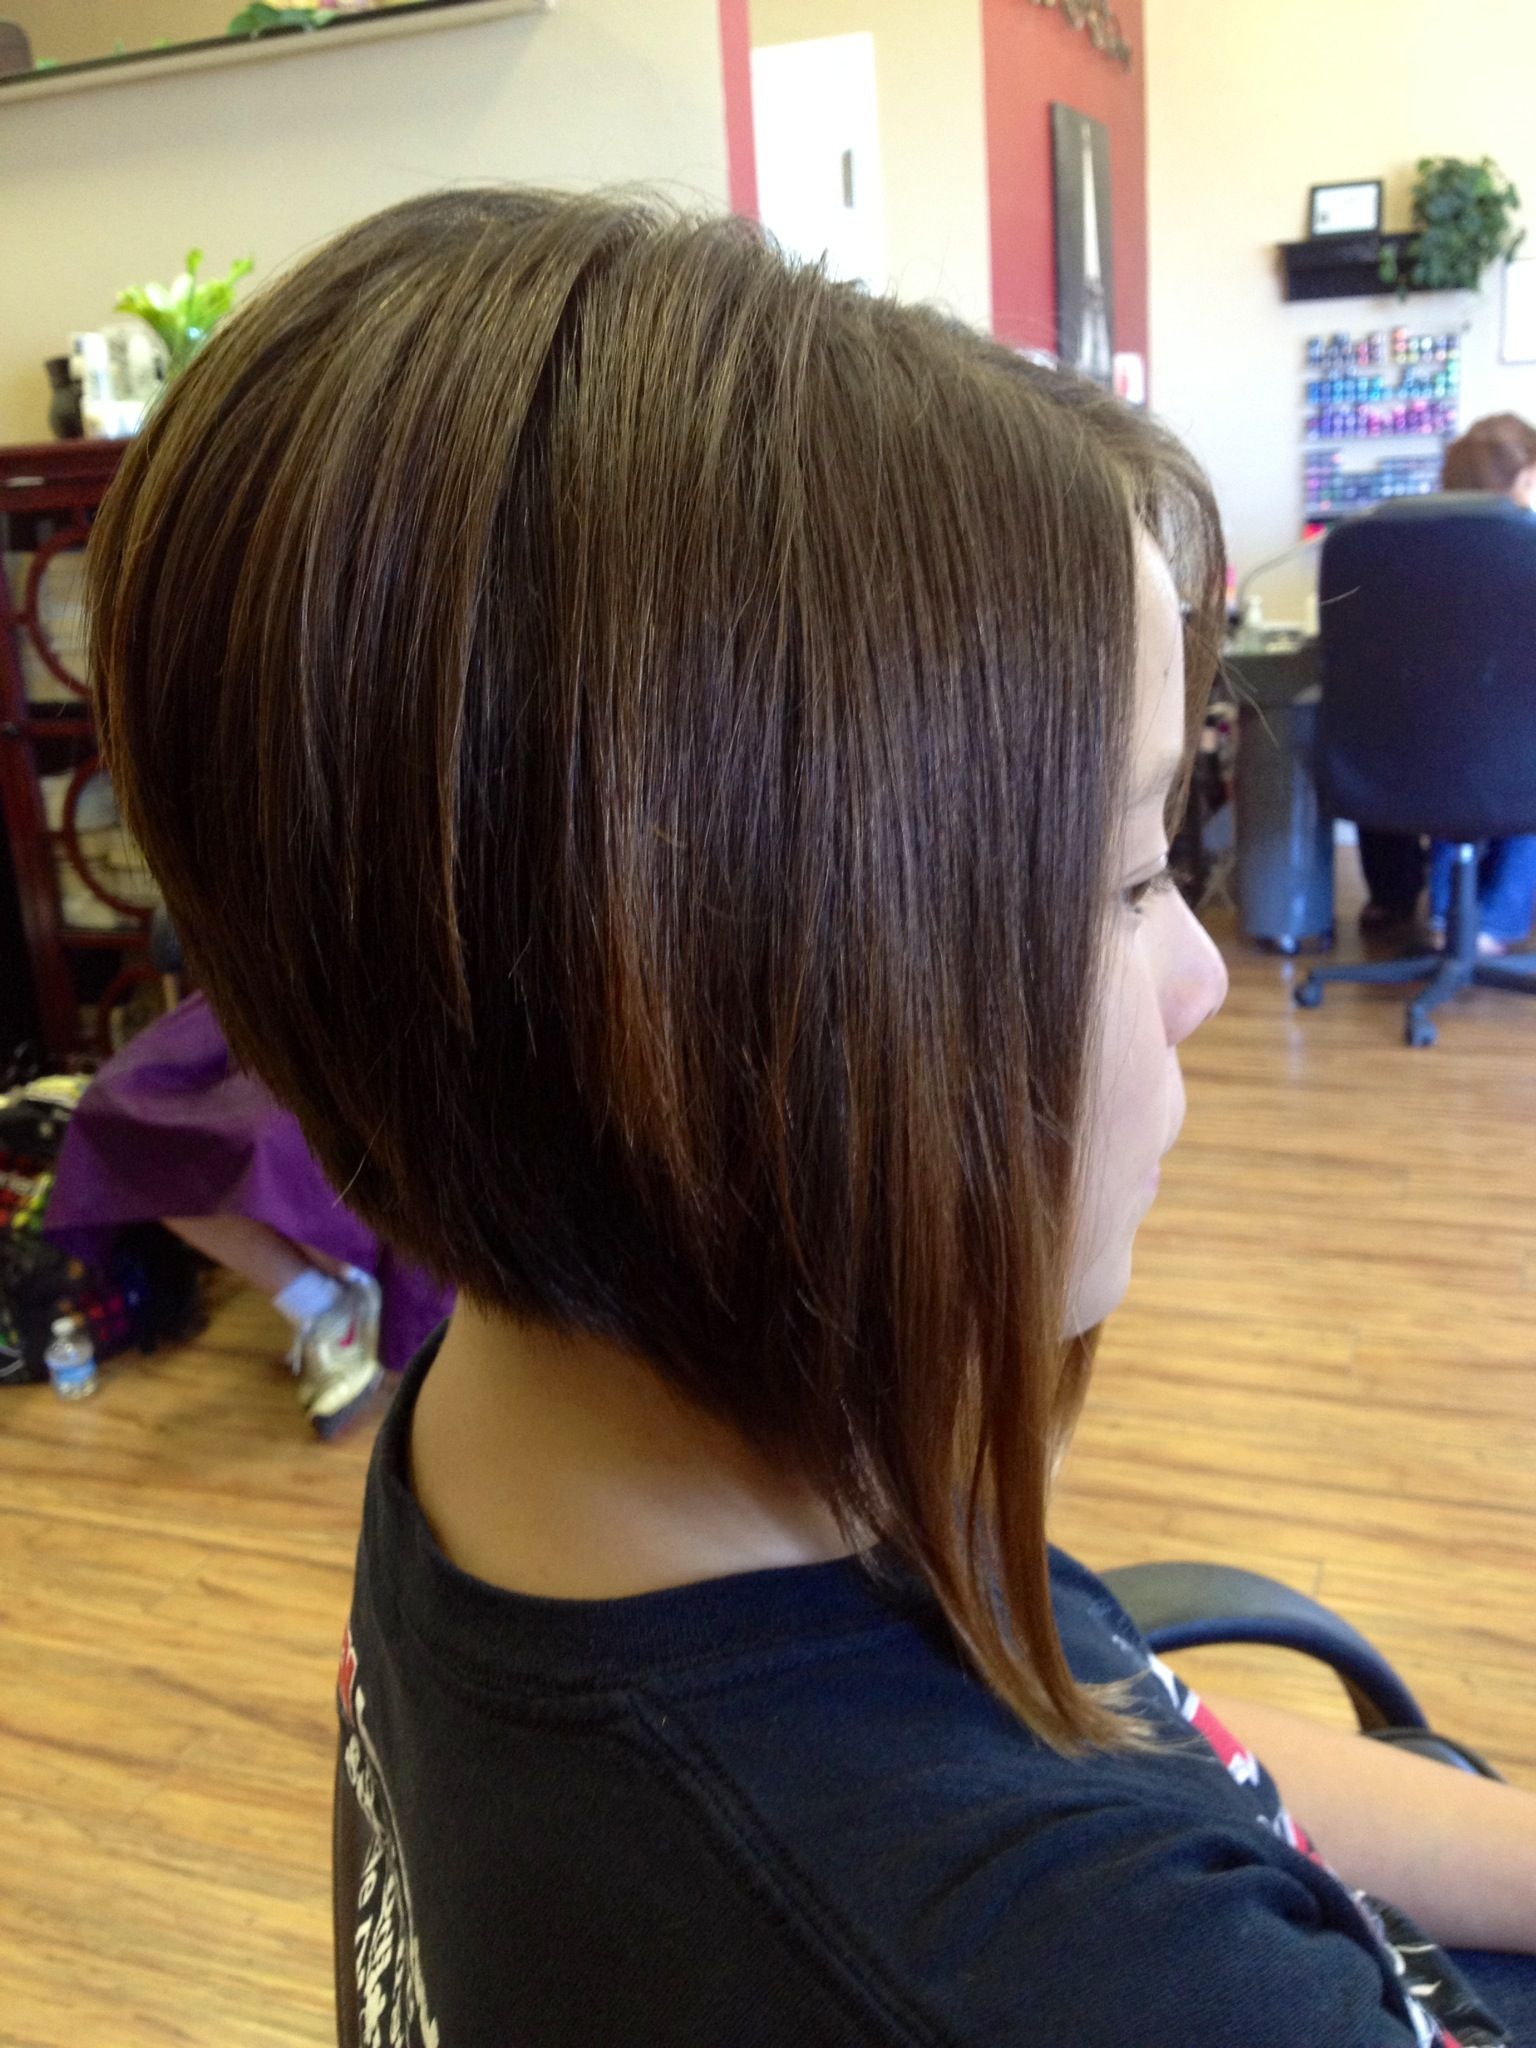 a line haircut- thinking about this for my next haircut | hair